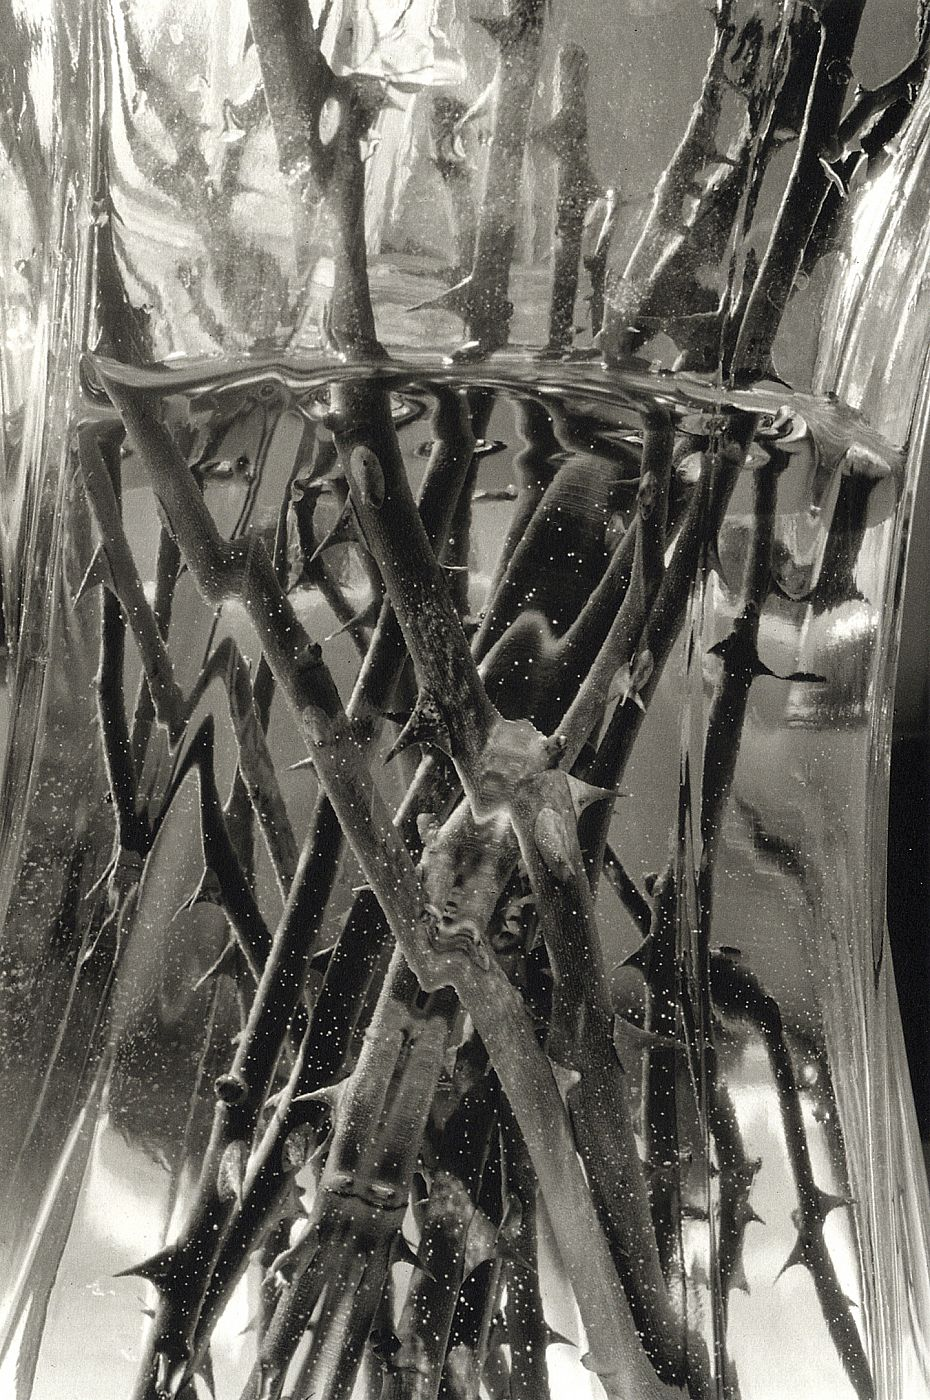 Lee Friedlander: Stems